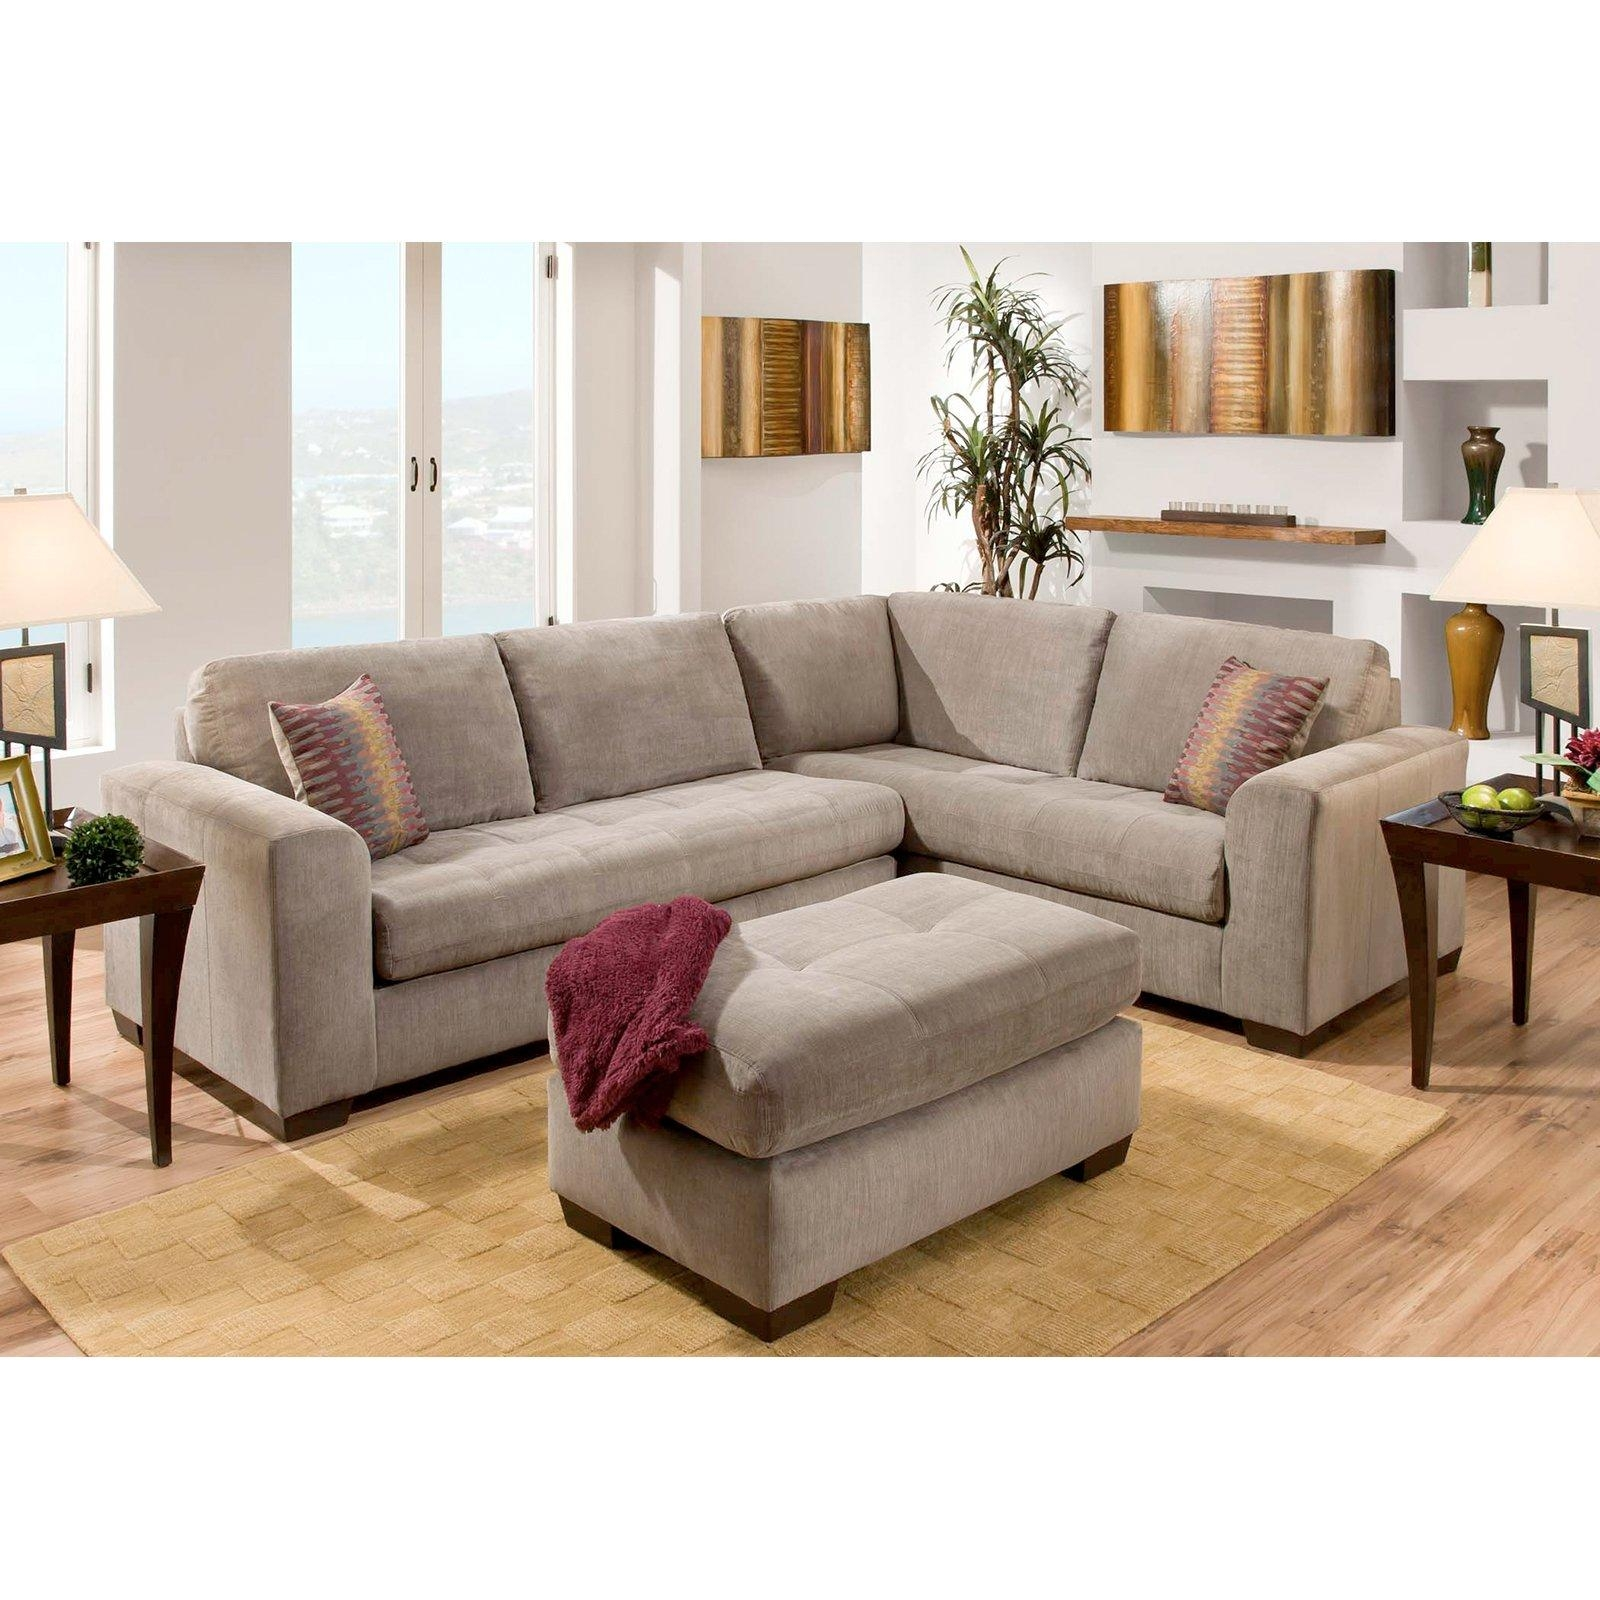 Furniture Of America Parker 2 Piece Fabric Sectional Sofa – Gray Inside Bauhaus Furniture Sectional Sofas (Image 16 of 20)